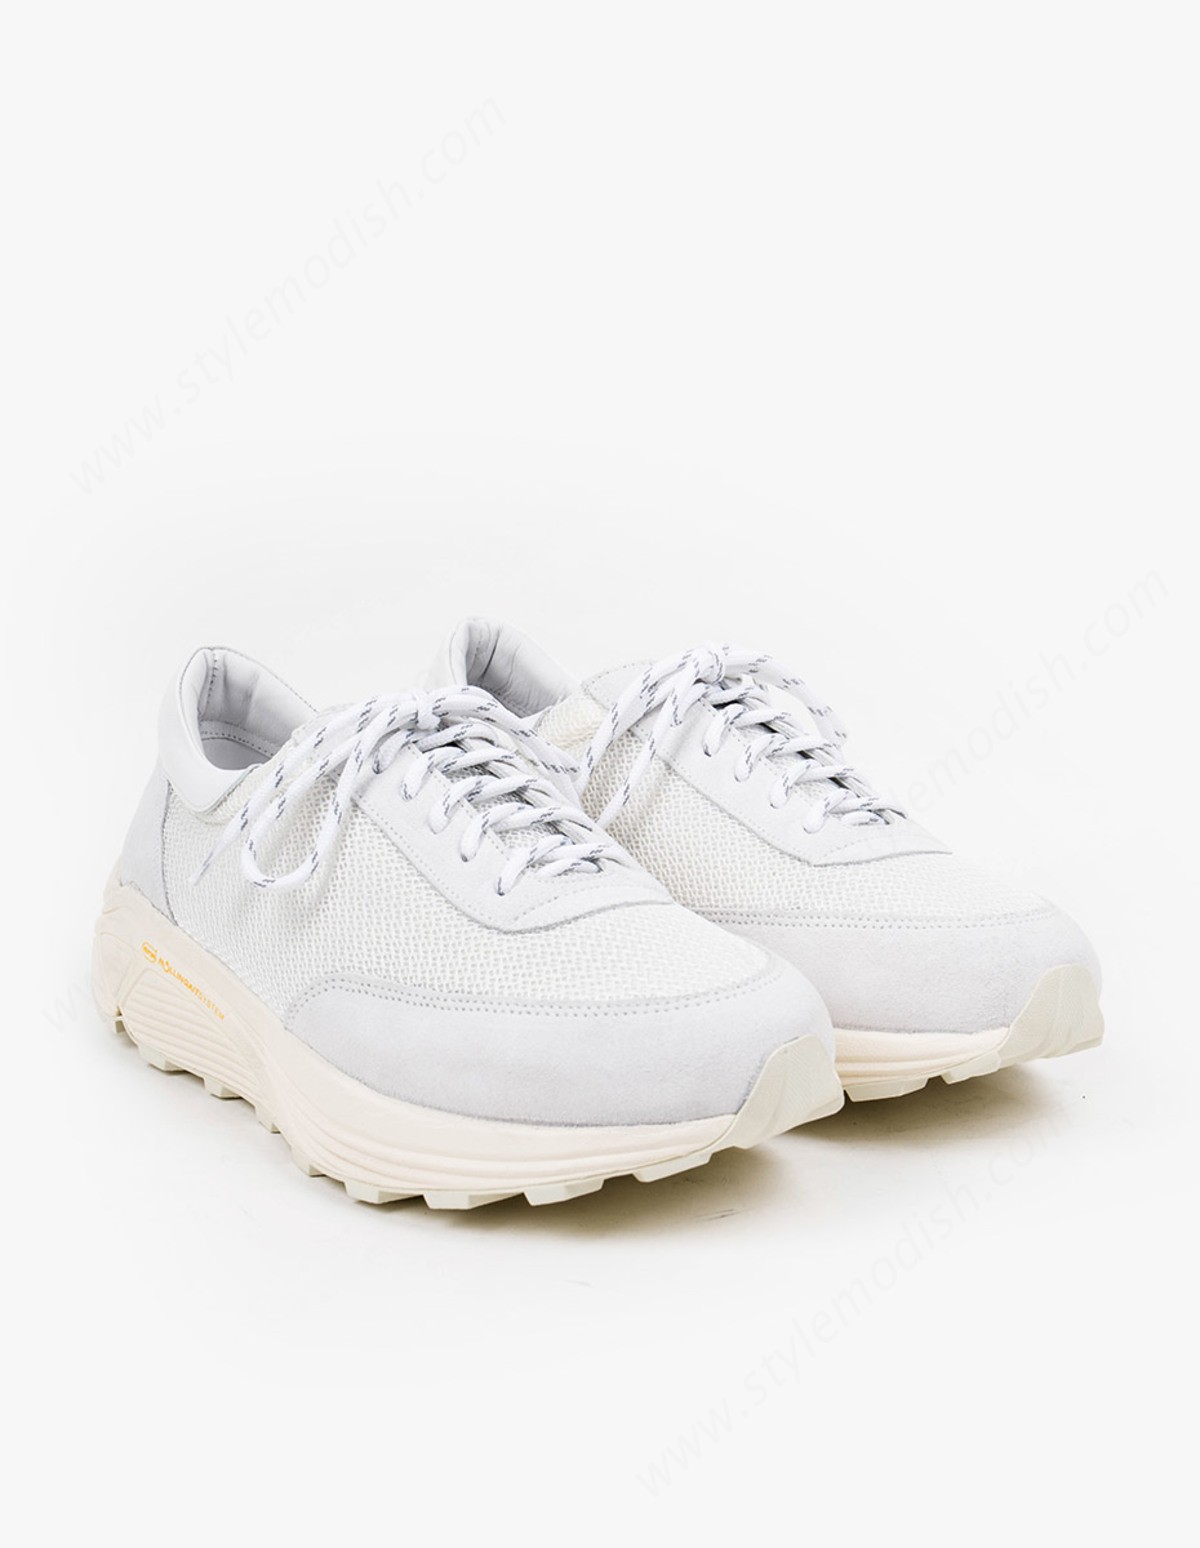 Mens's Our Legacy Mono Runner - White Trainers & Trainers - -1